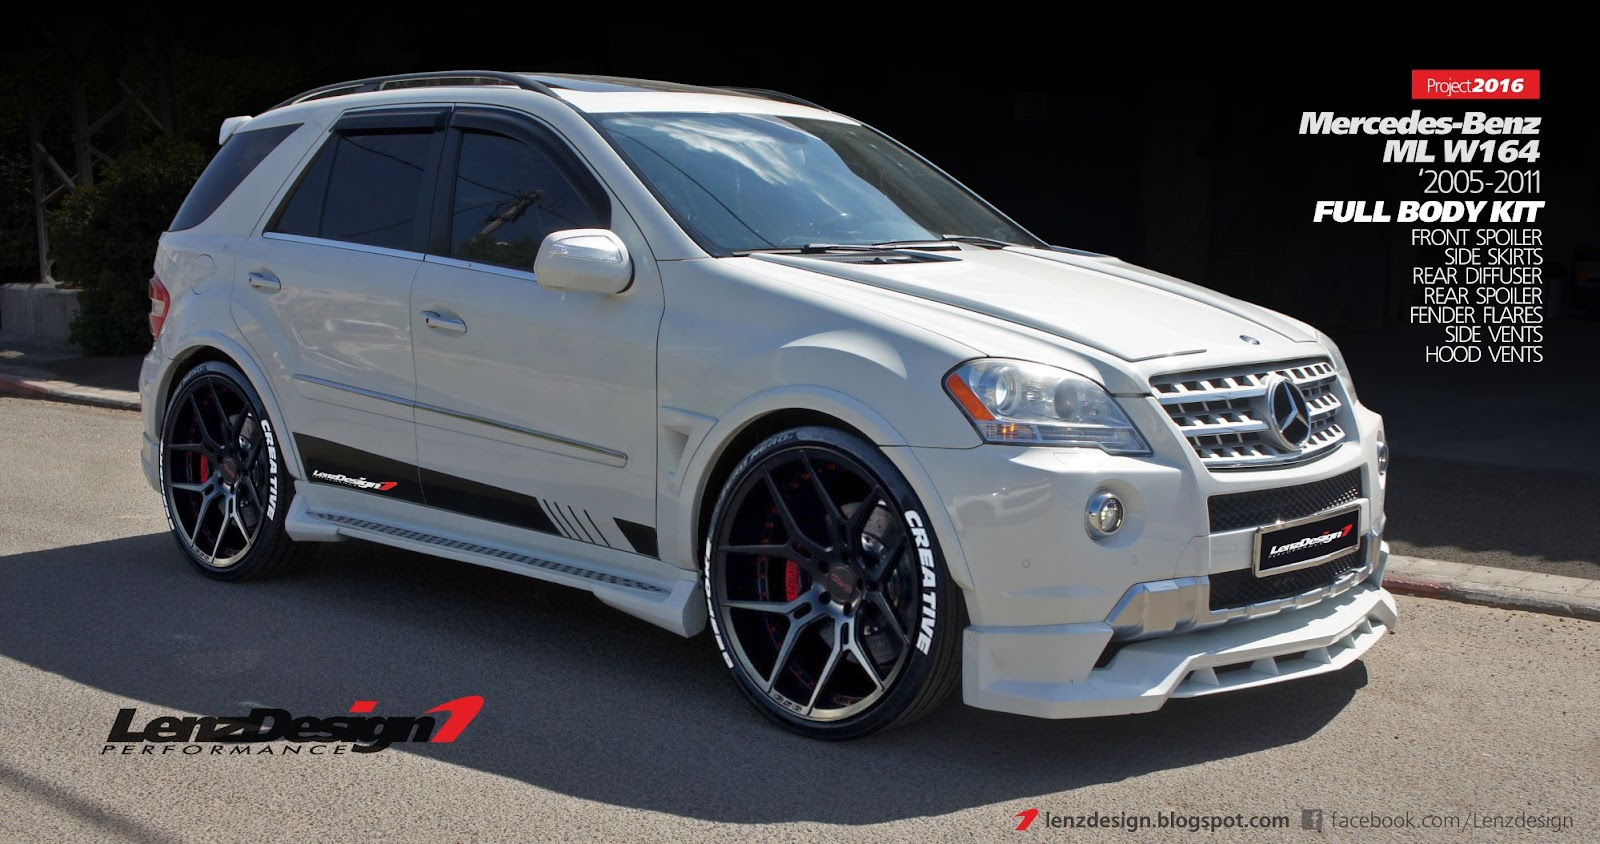 mercedes benz ml w164 tuning wide body kit lenzdesign performance. Black Bedroom Furniture Sets. Home Design Ideas